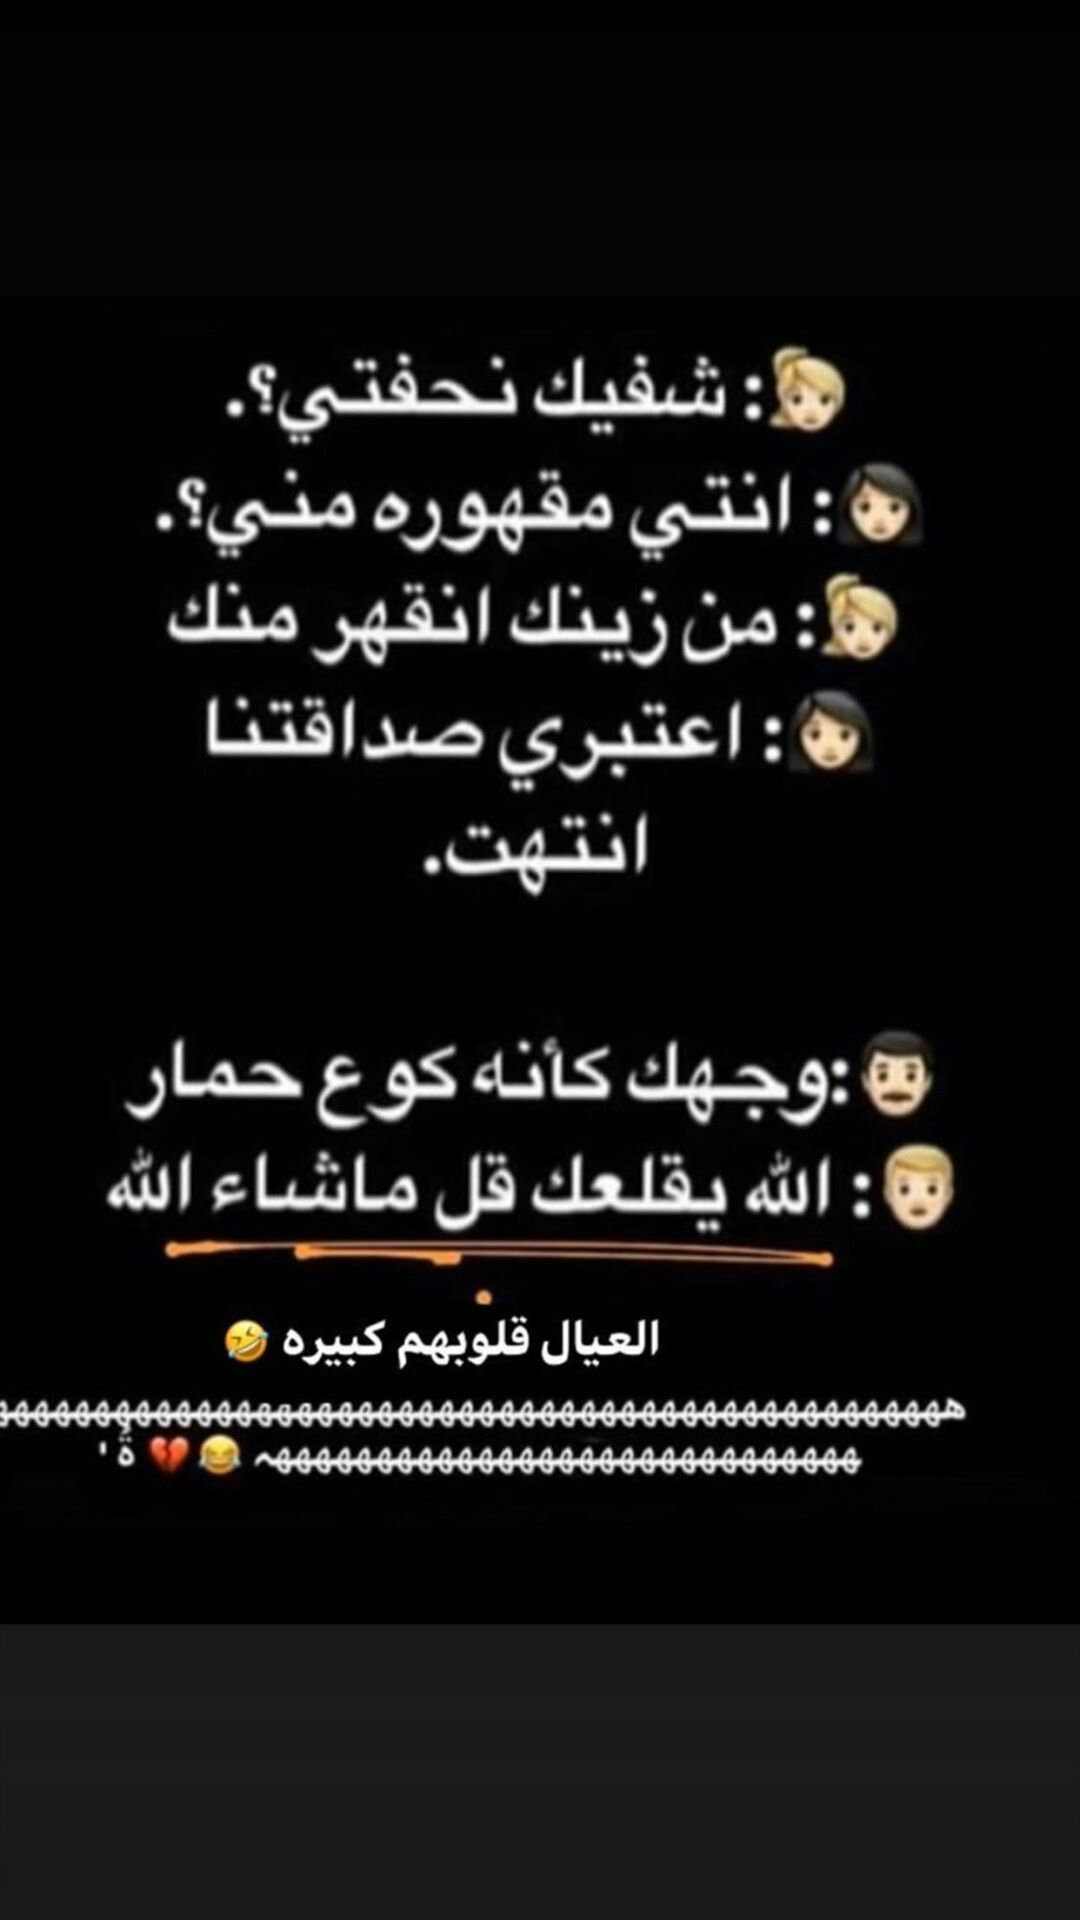 Pin By Waad On مضحك او صحيح Fun Quotes Funny Funny Study Quotes Funny Phrases